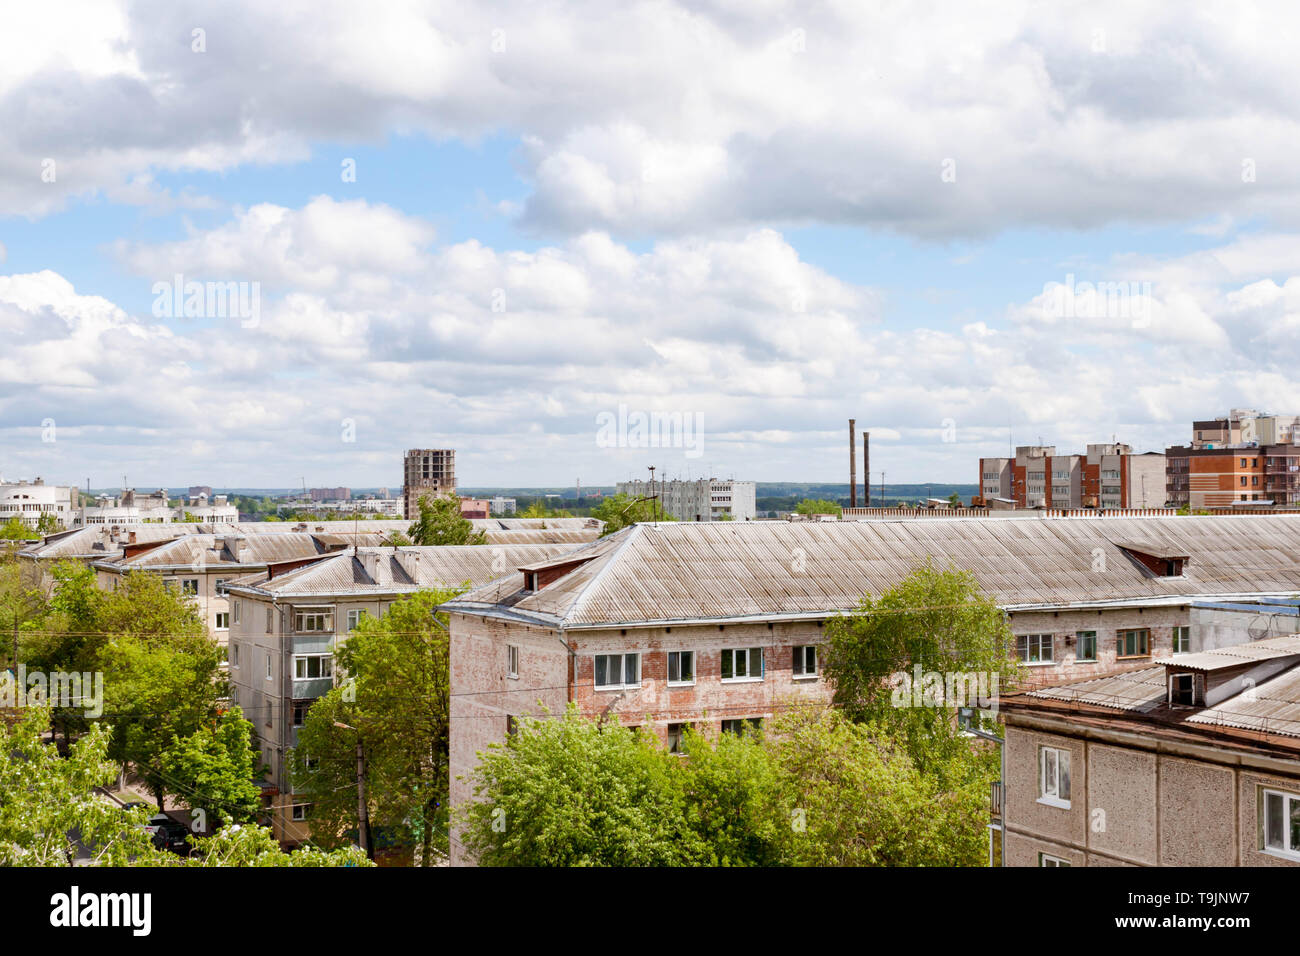 Kaluga, Russia - May 11, 2019: View of roofs of old brick 5 storey houses from the Sky restaurant. Industrial landscape on cloudy sky background. - Stock Image